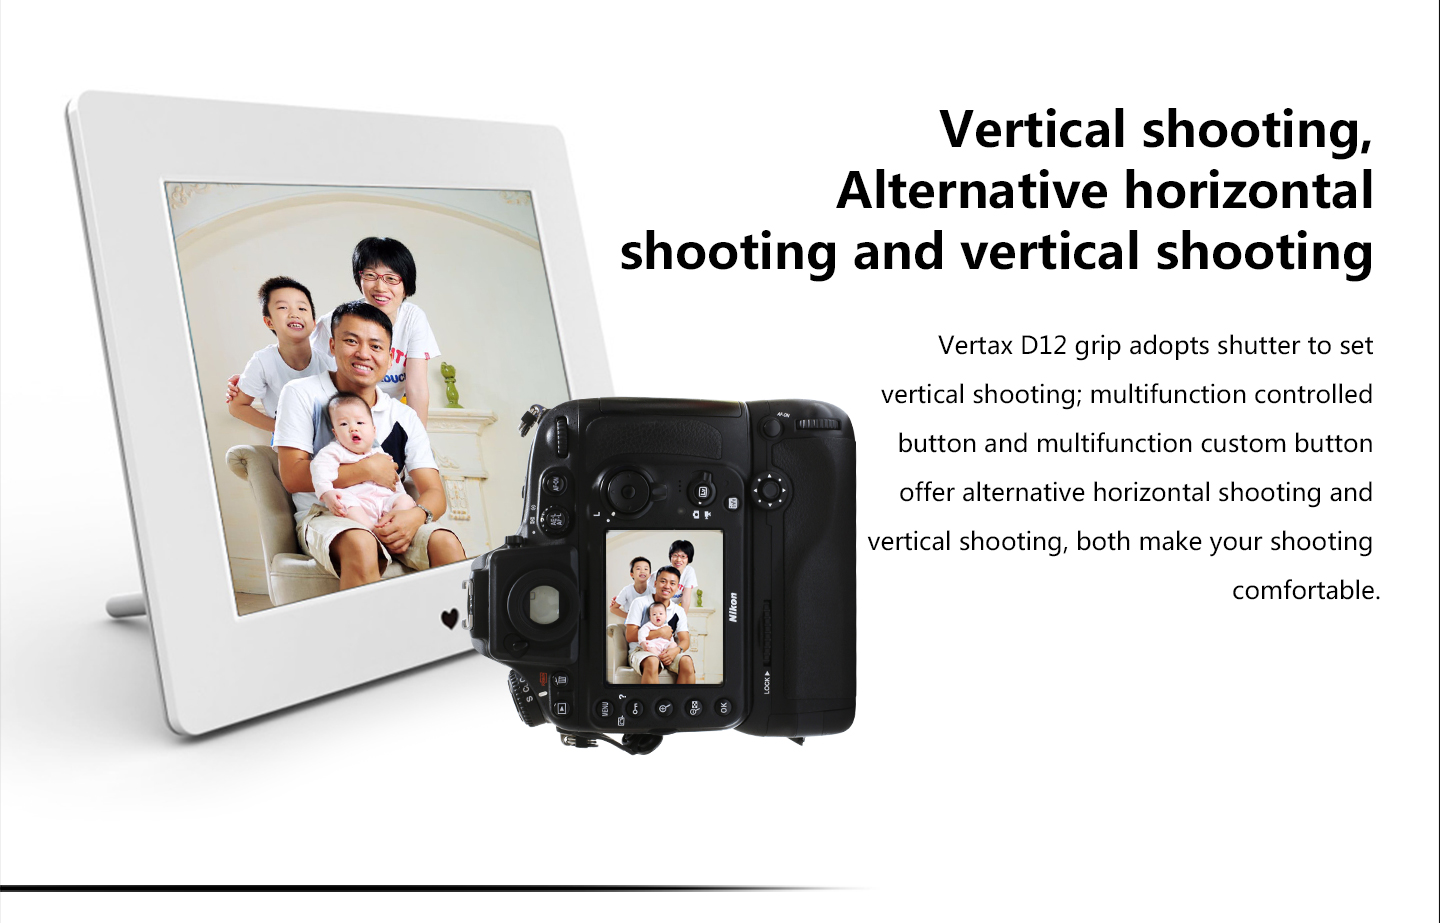 Vertical shooting, Alternative horizontal shooting and vertical shooting